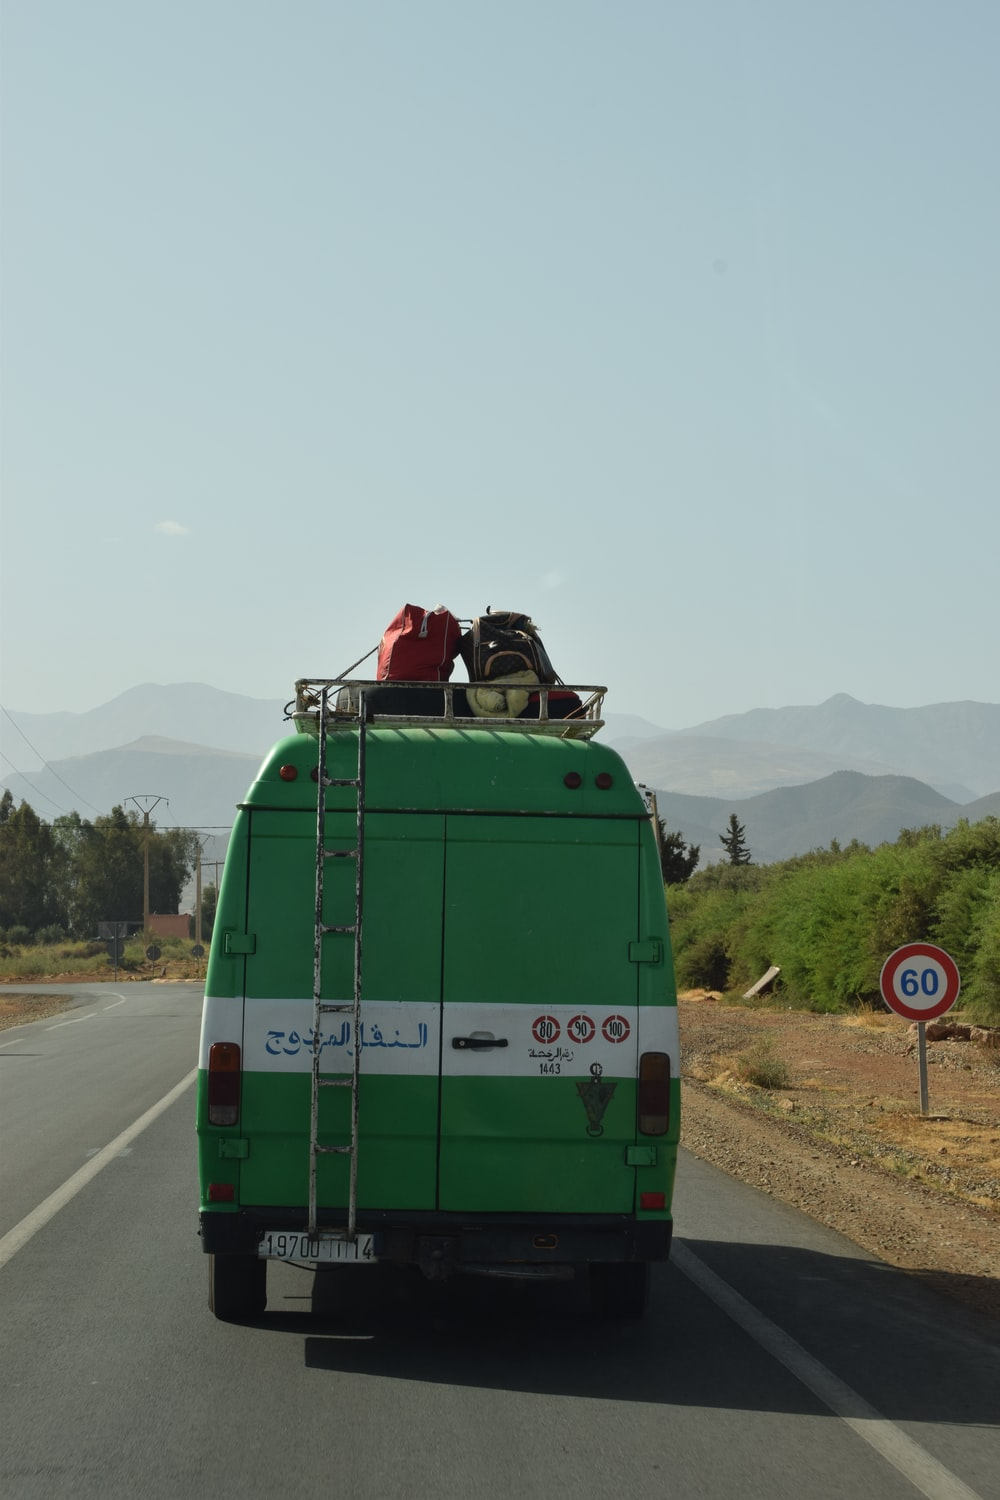 green and white van on road